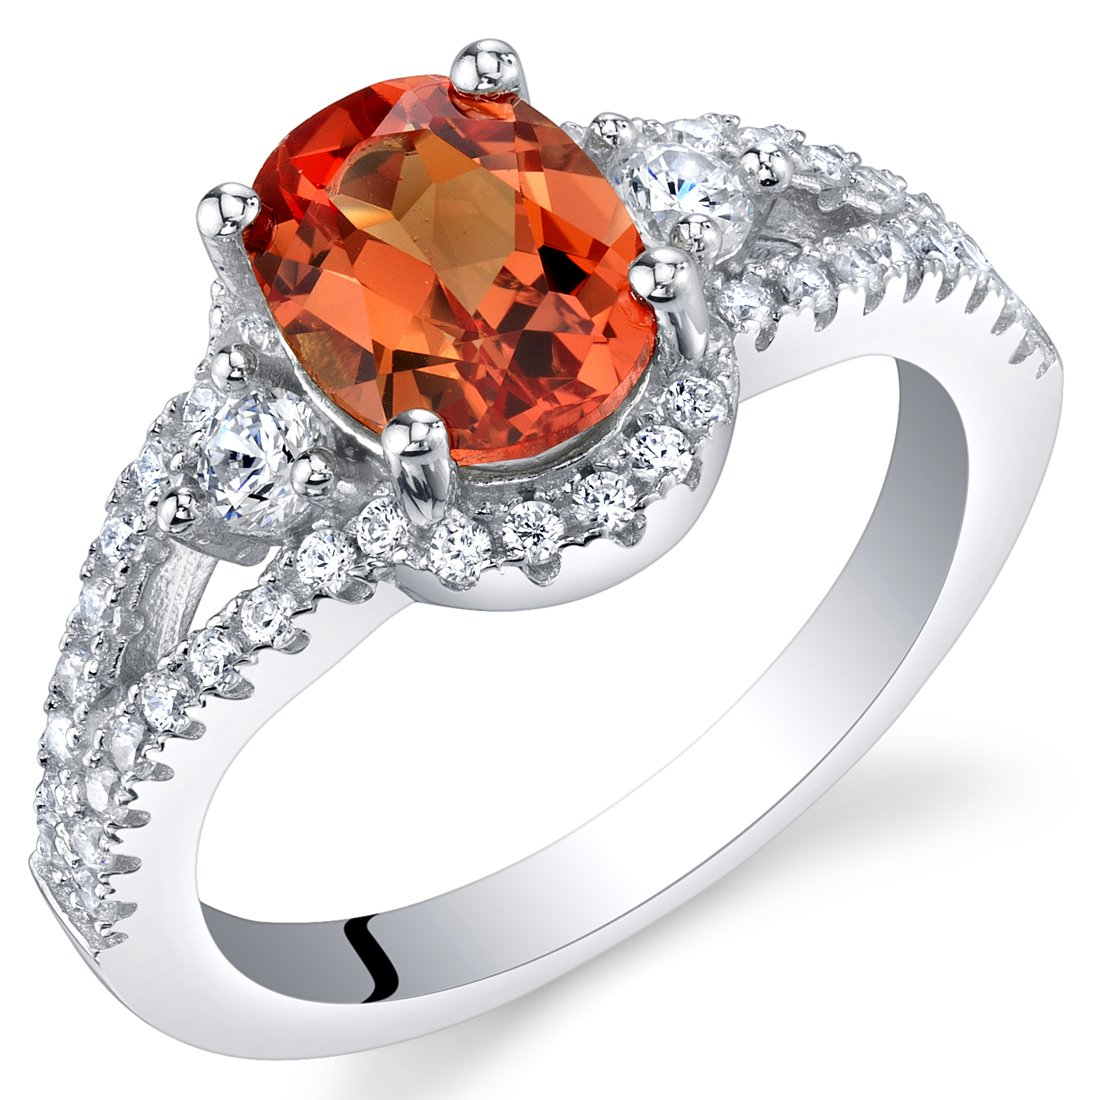 Created Padparadscha Sapphire Sterling Silver Keepsake Ring Size 6